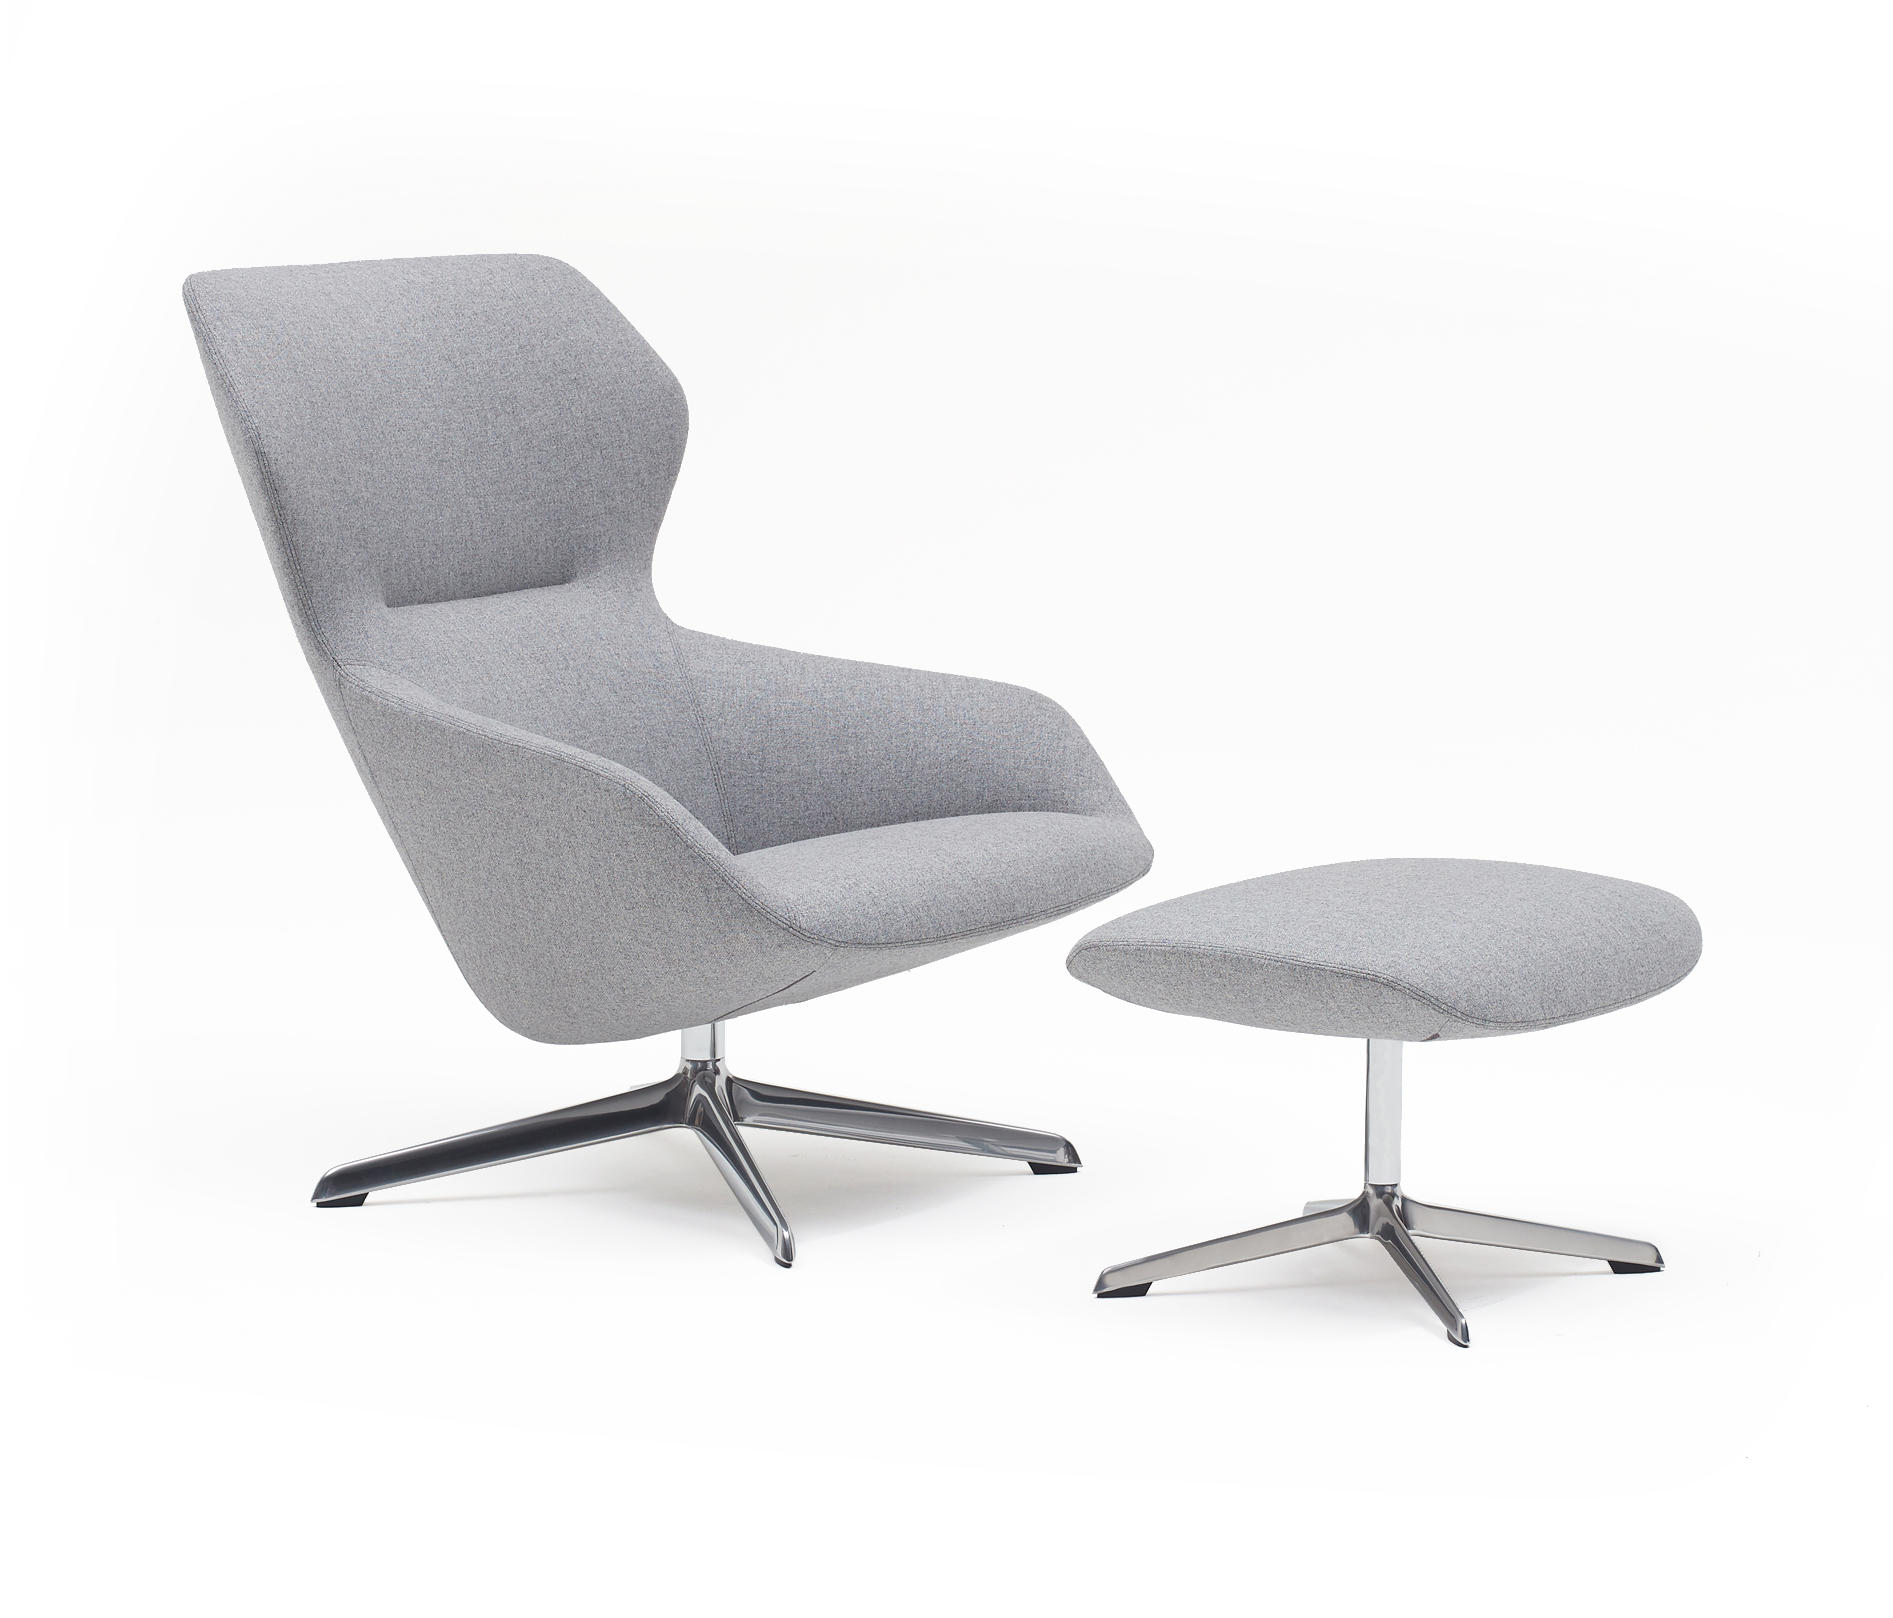 Lounge Sessel Ray Ray Lounge 9241 / 9247 - Sessel Von Brunner | Architonic